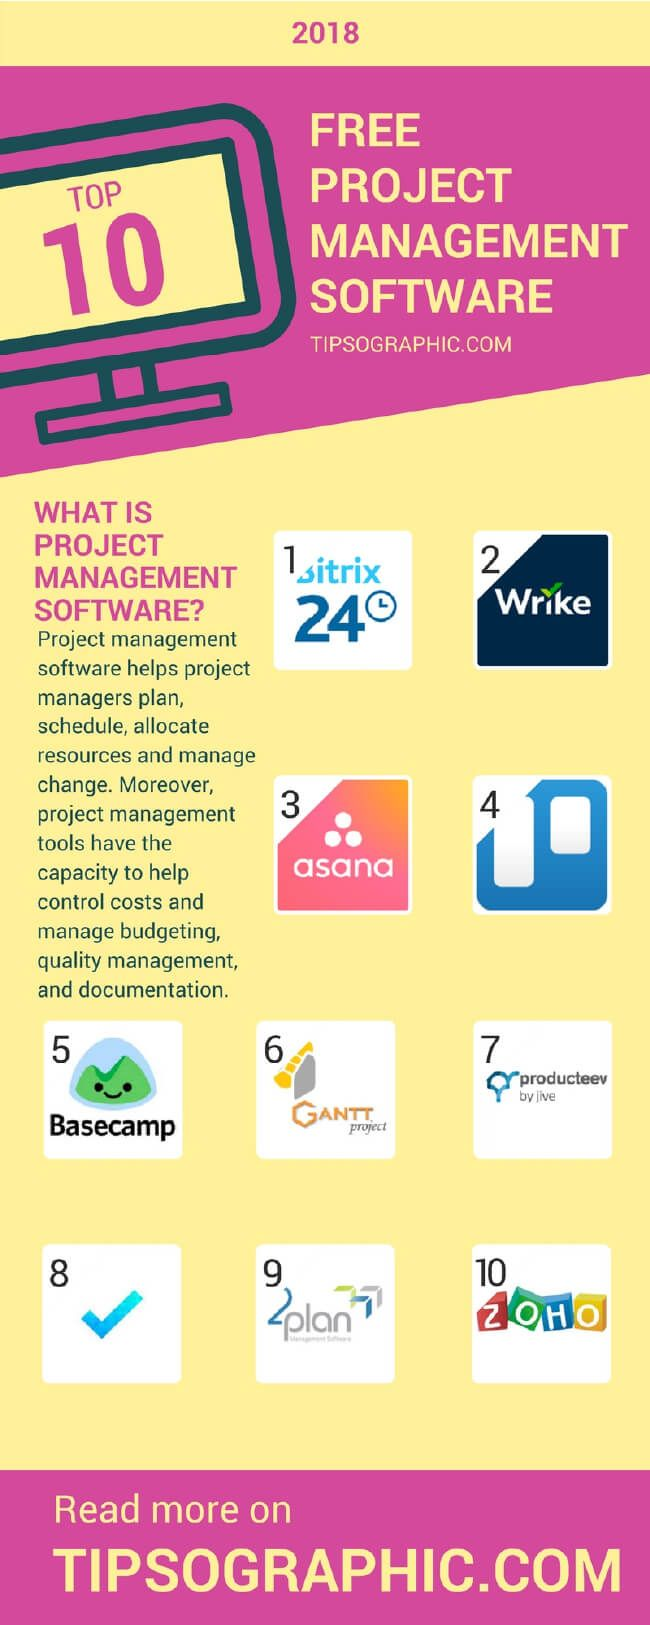 Image titled free project management software 2018 best systems